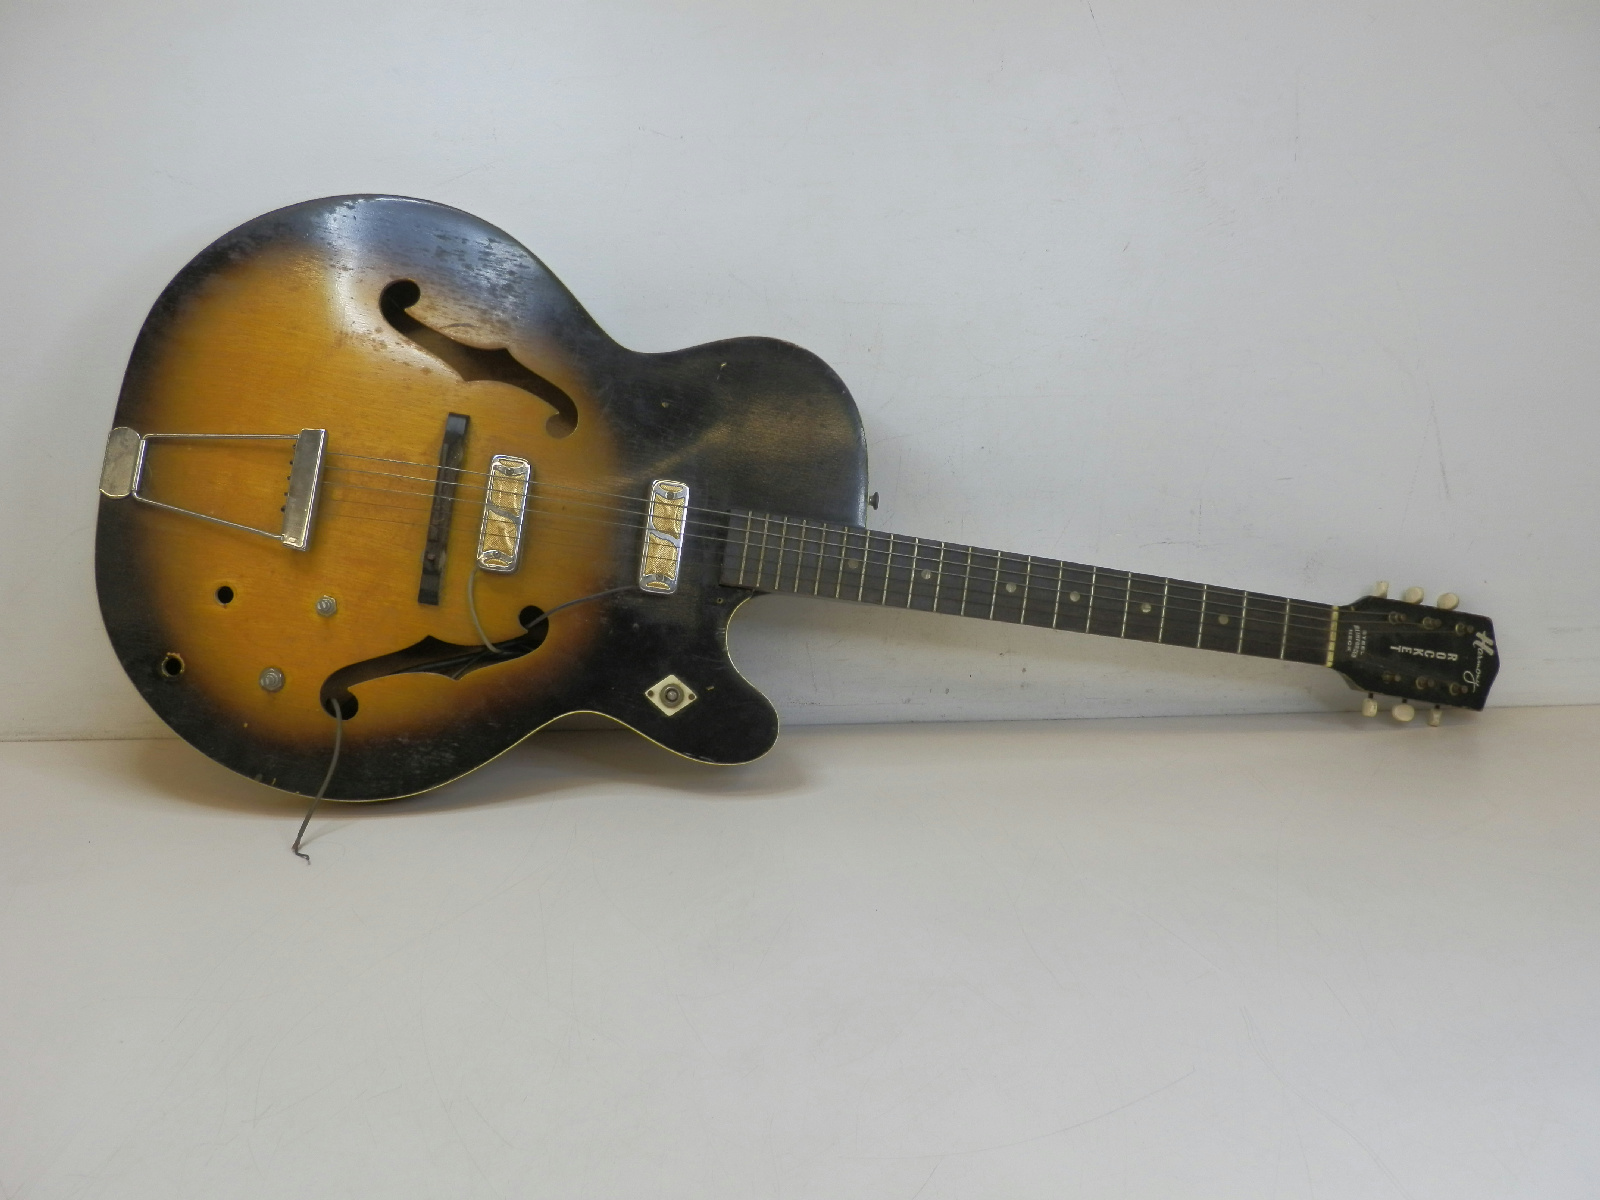 1960 harmony rocket h54 archtop electric guitar gold foil pickups parts repair ebay. Black Bedroom Furniture Sets. Home Design Ideas